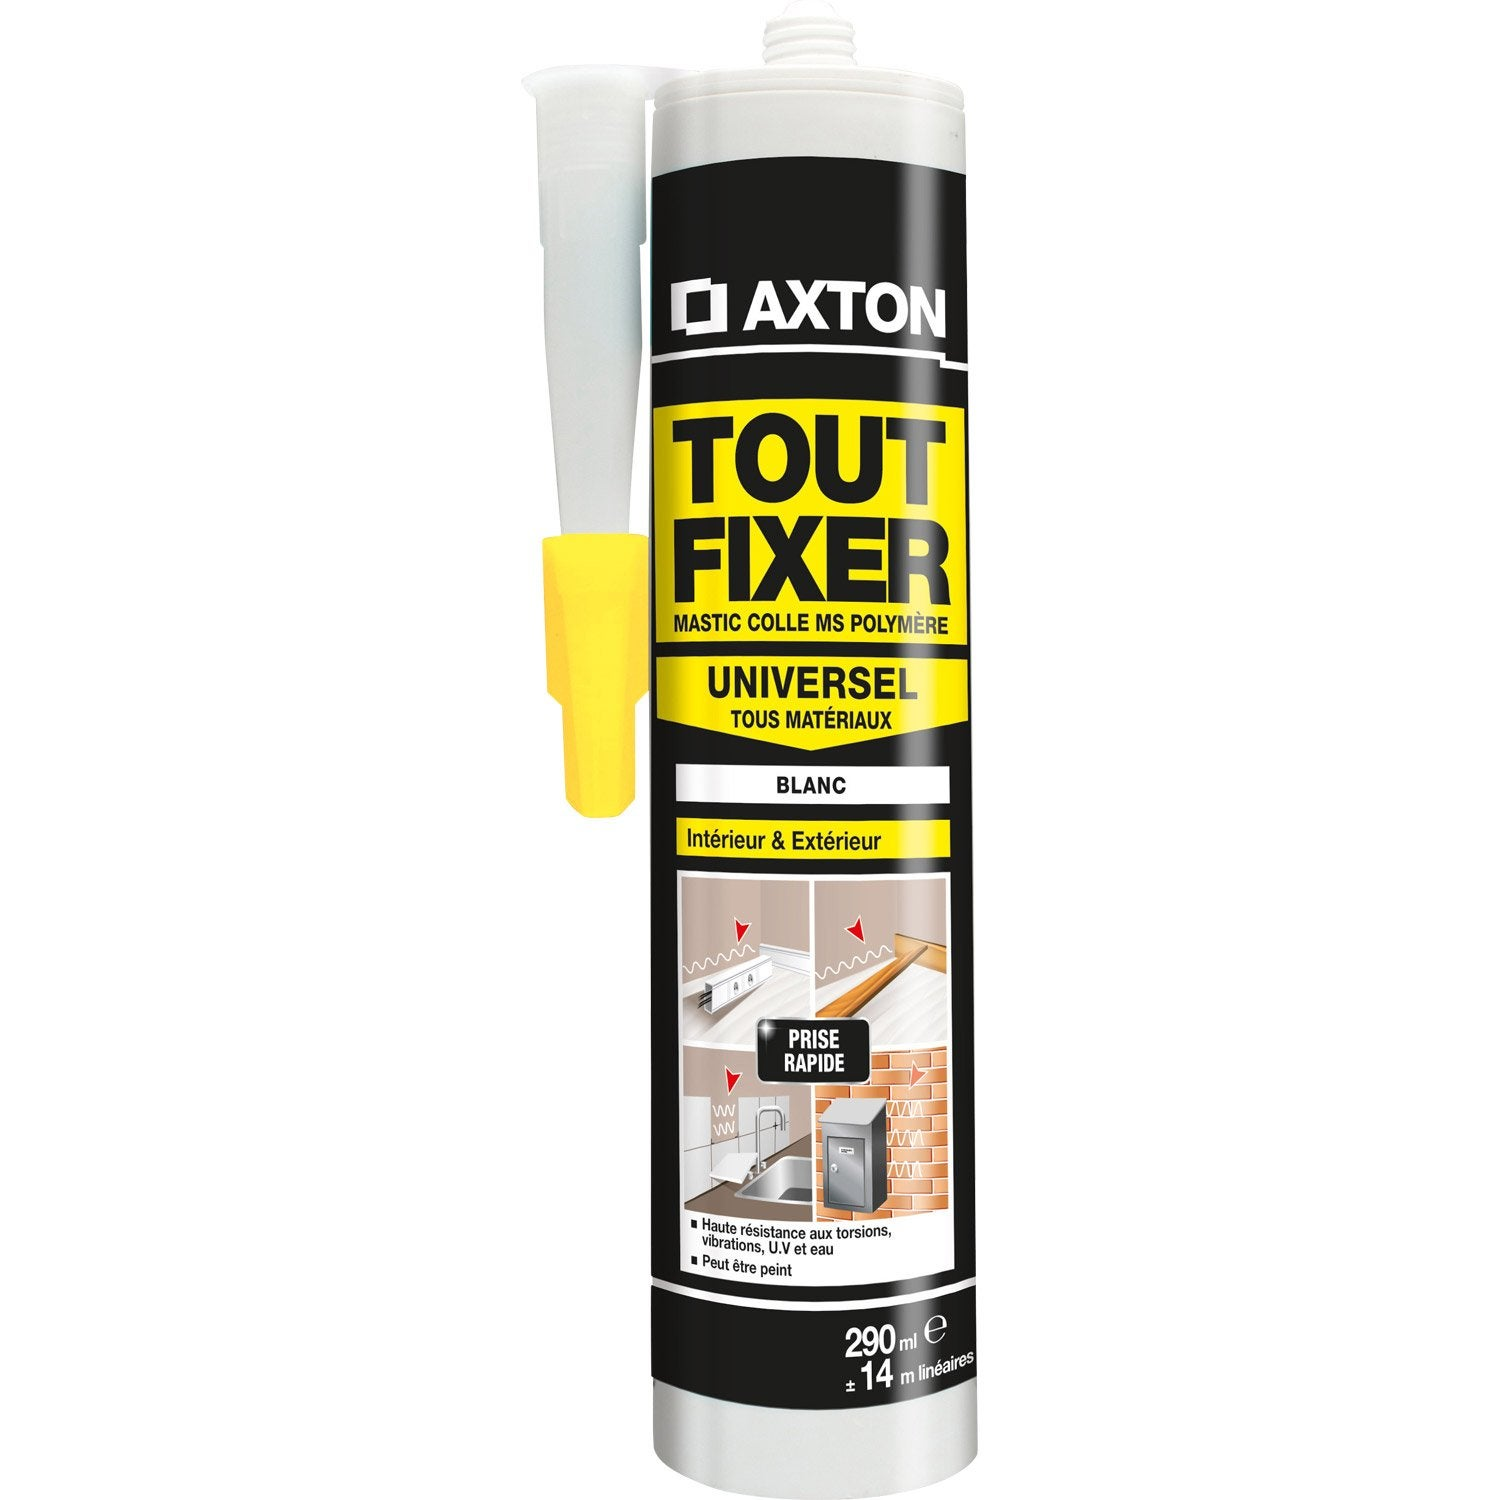 Colle mastic tout fixer axton 290 ml leroy merlin for Mastic bois exterieur